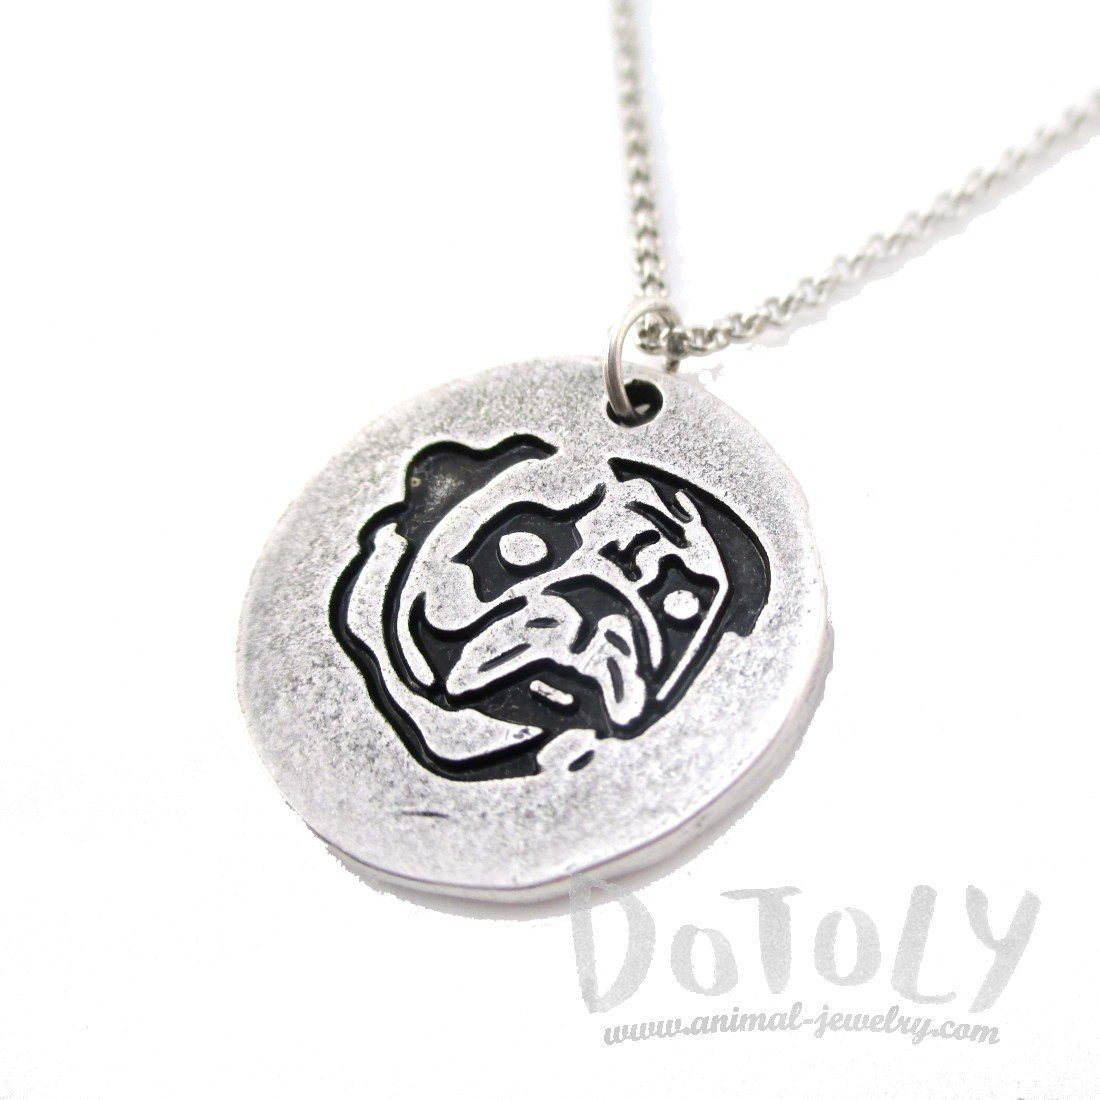 Hand Stamped Pug Dog Coin Pendant Necklace in Silver | Animal Jewelry